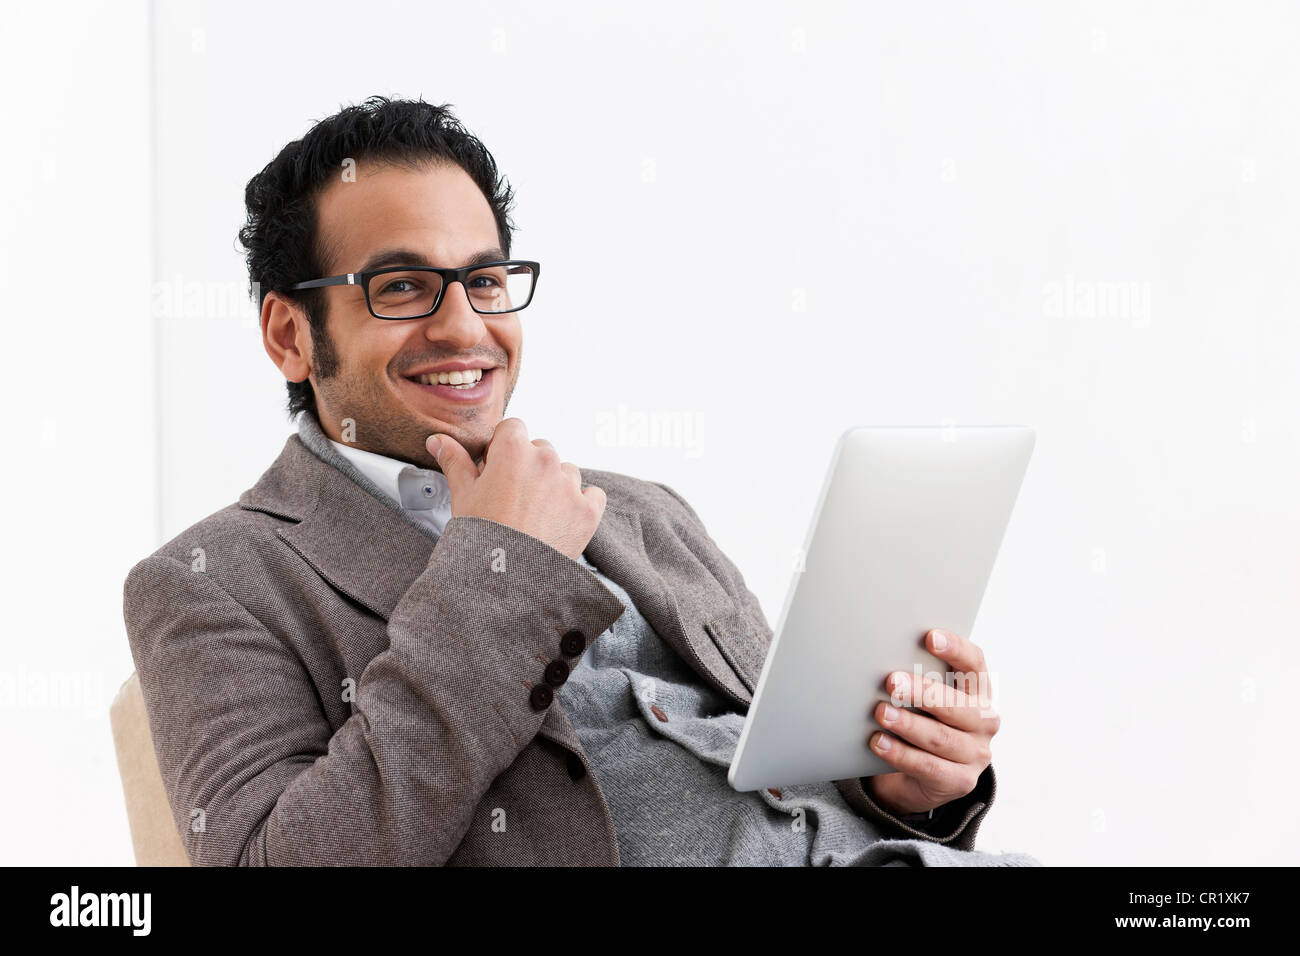 Businessman using tablet computer - Stock Image